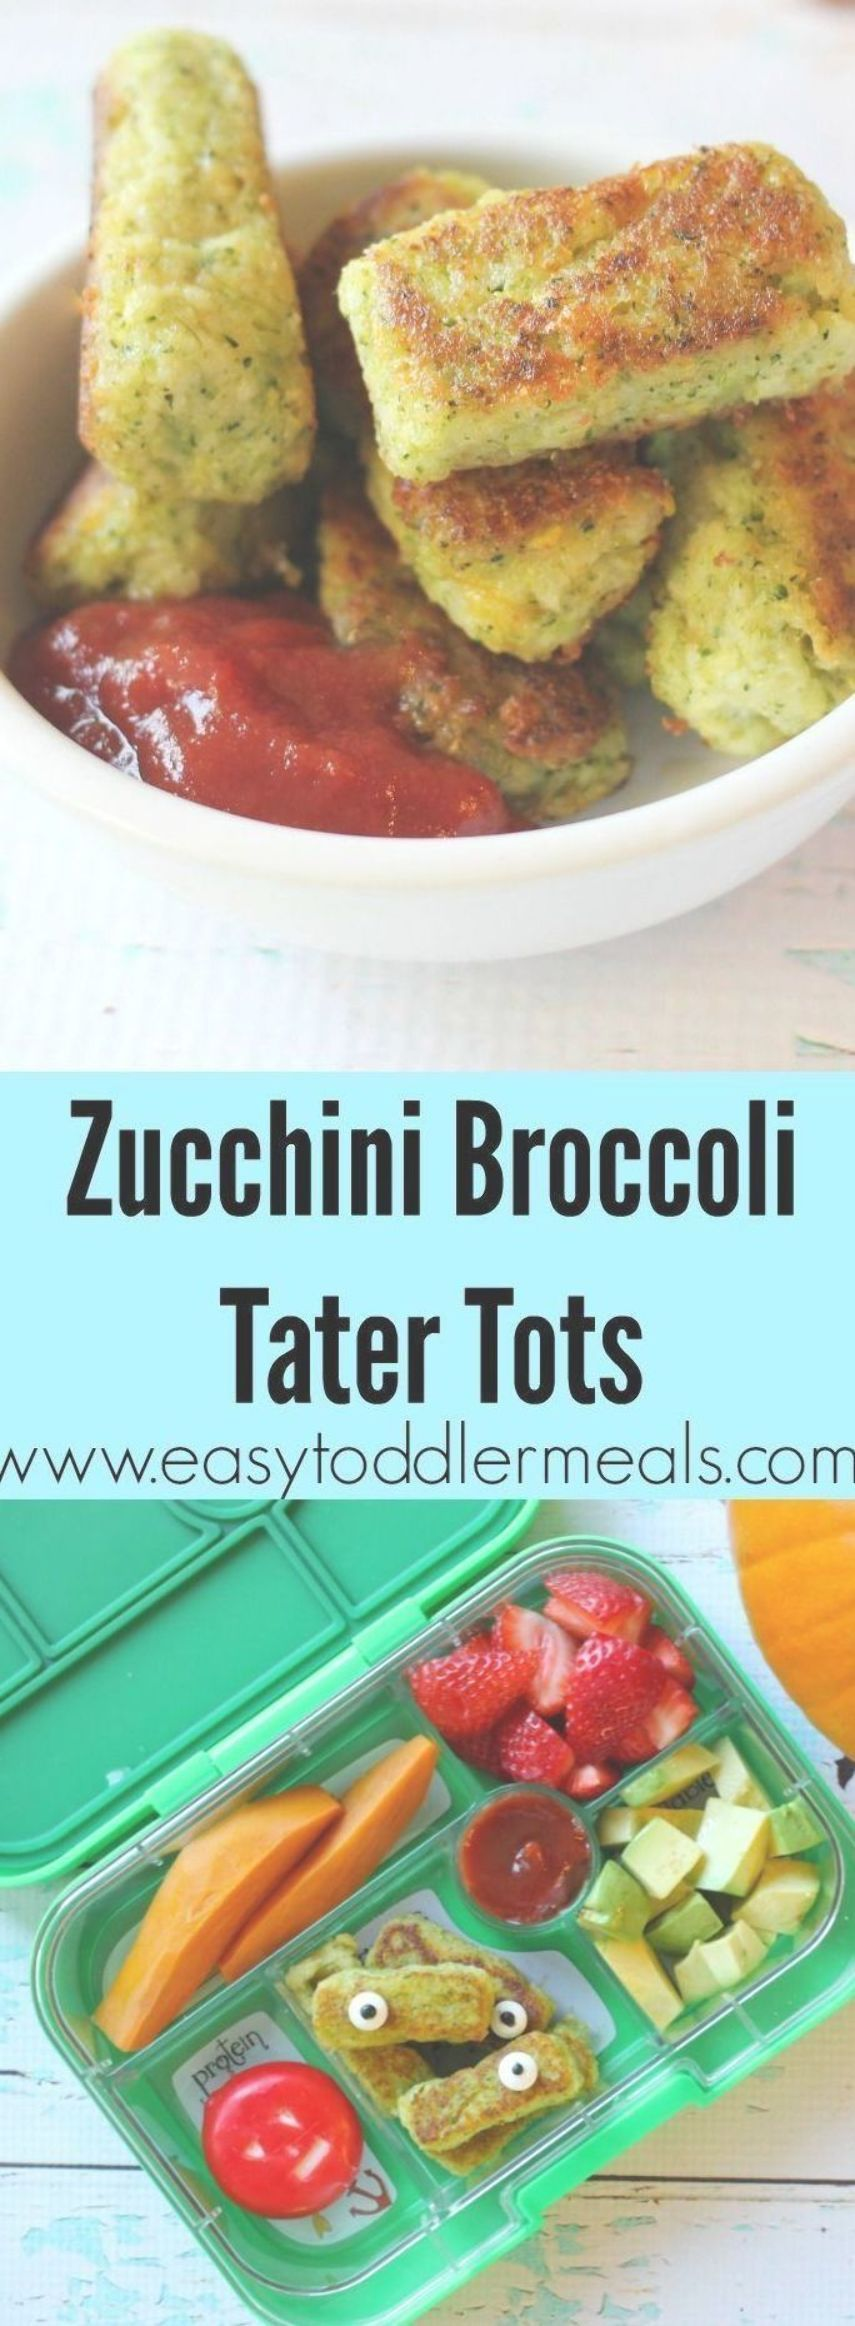 These zucchini broccoli tater tots make for a complete and healthy meal  it has Diese Zucchini Broccoli Tater Tots sorgen für eine vollständige und gesunde Mahl...